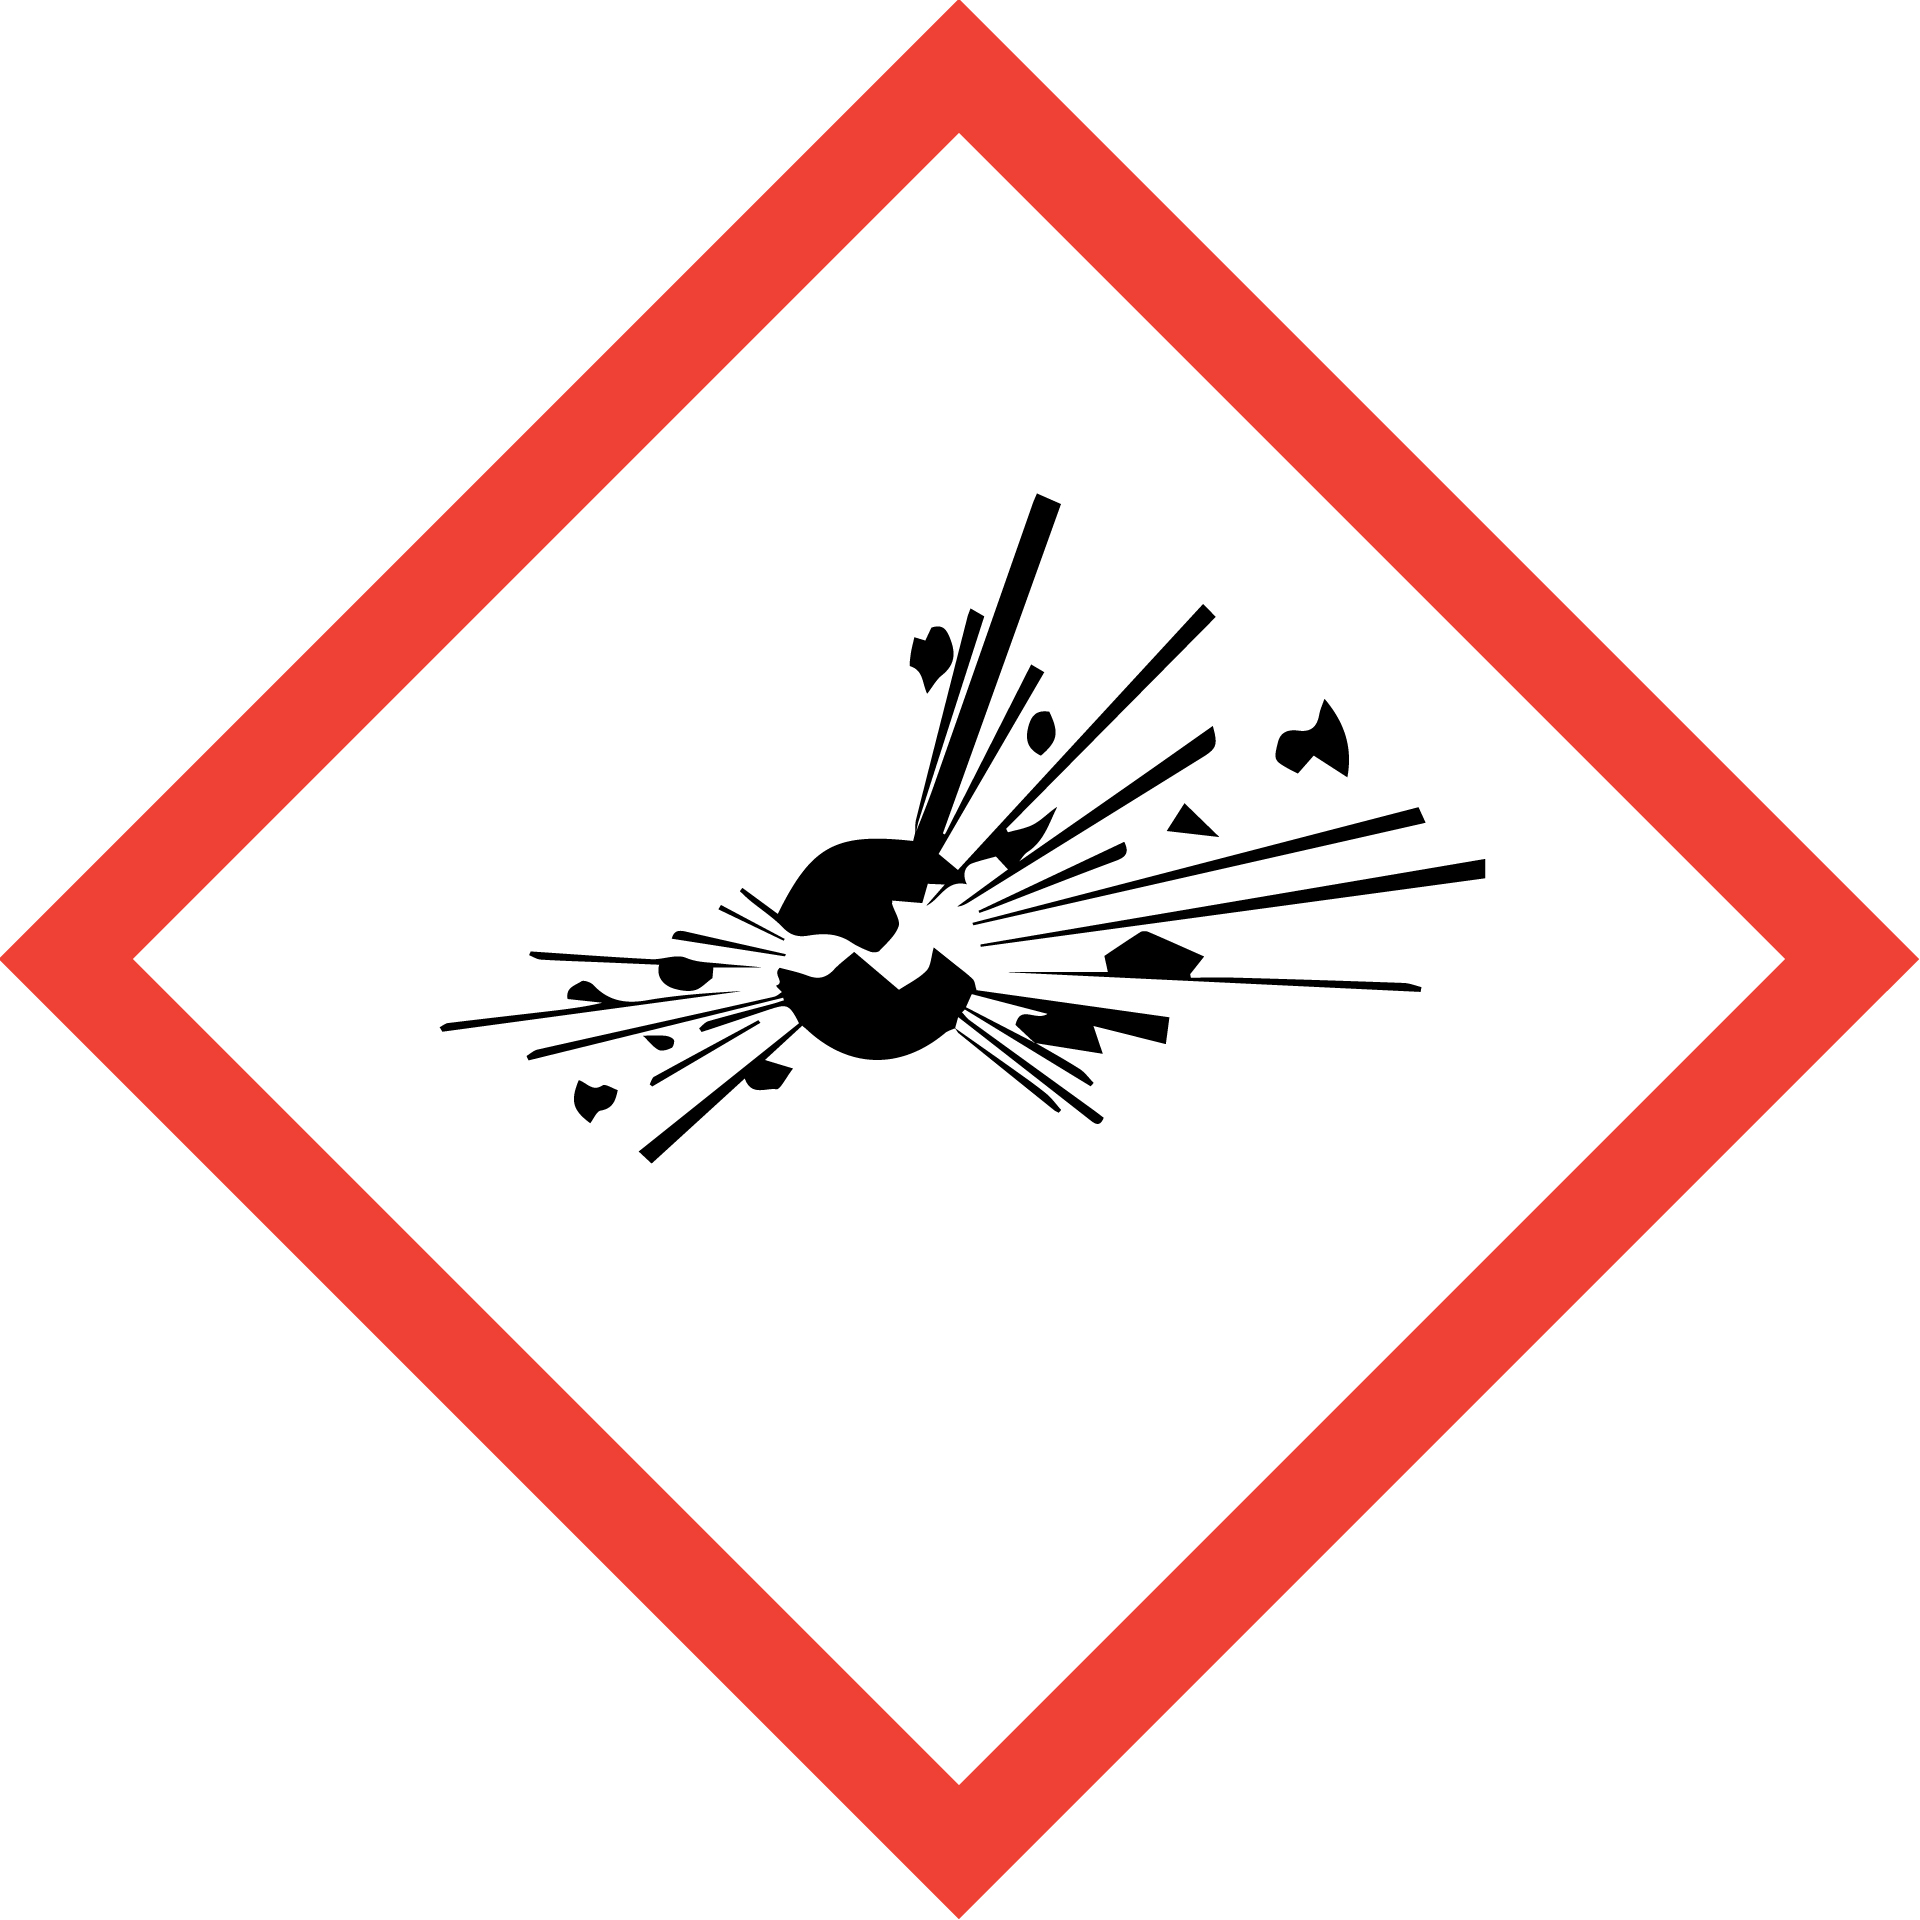 Chemical symbol for explosive